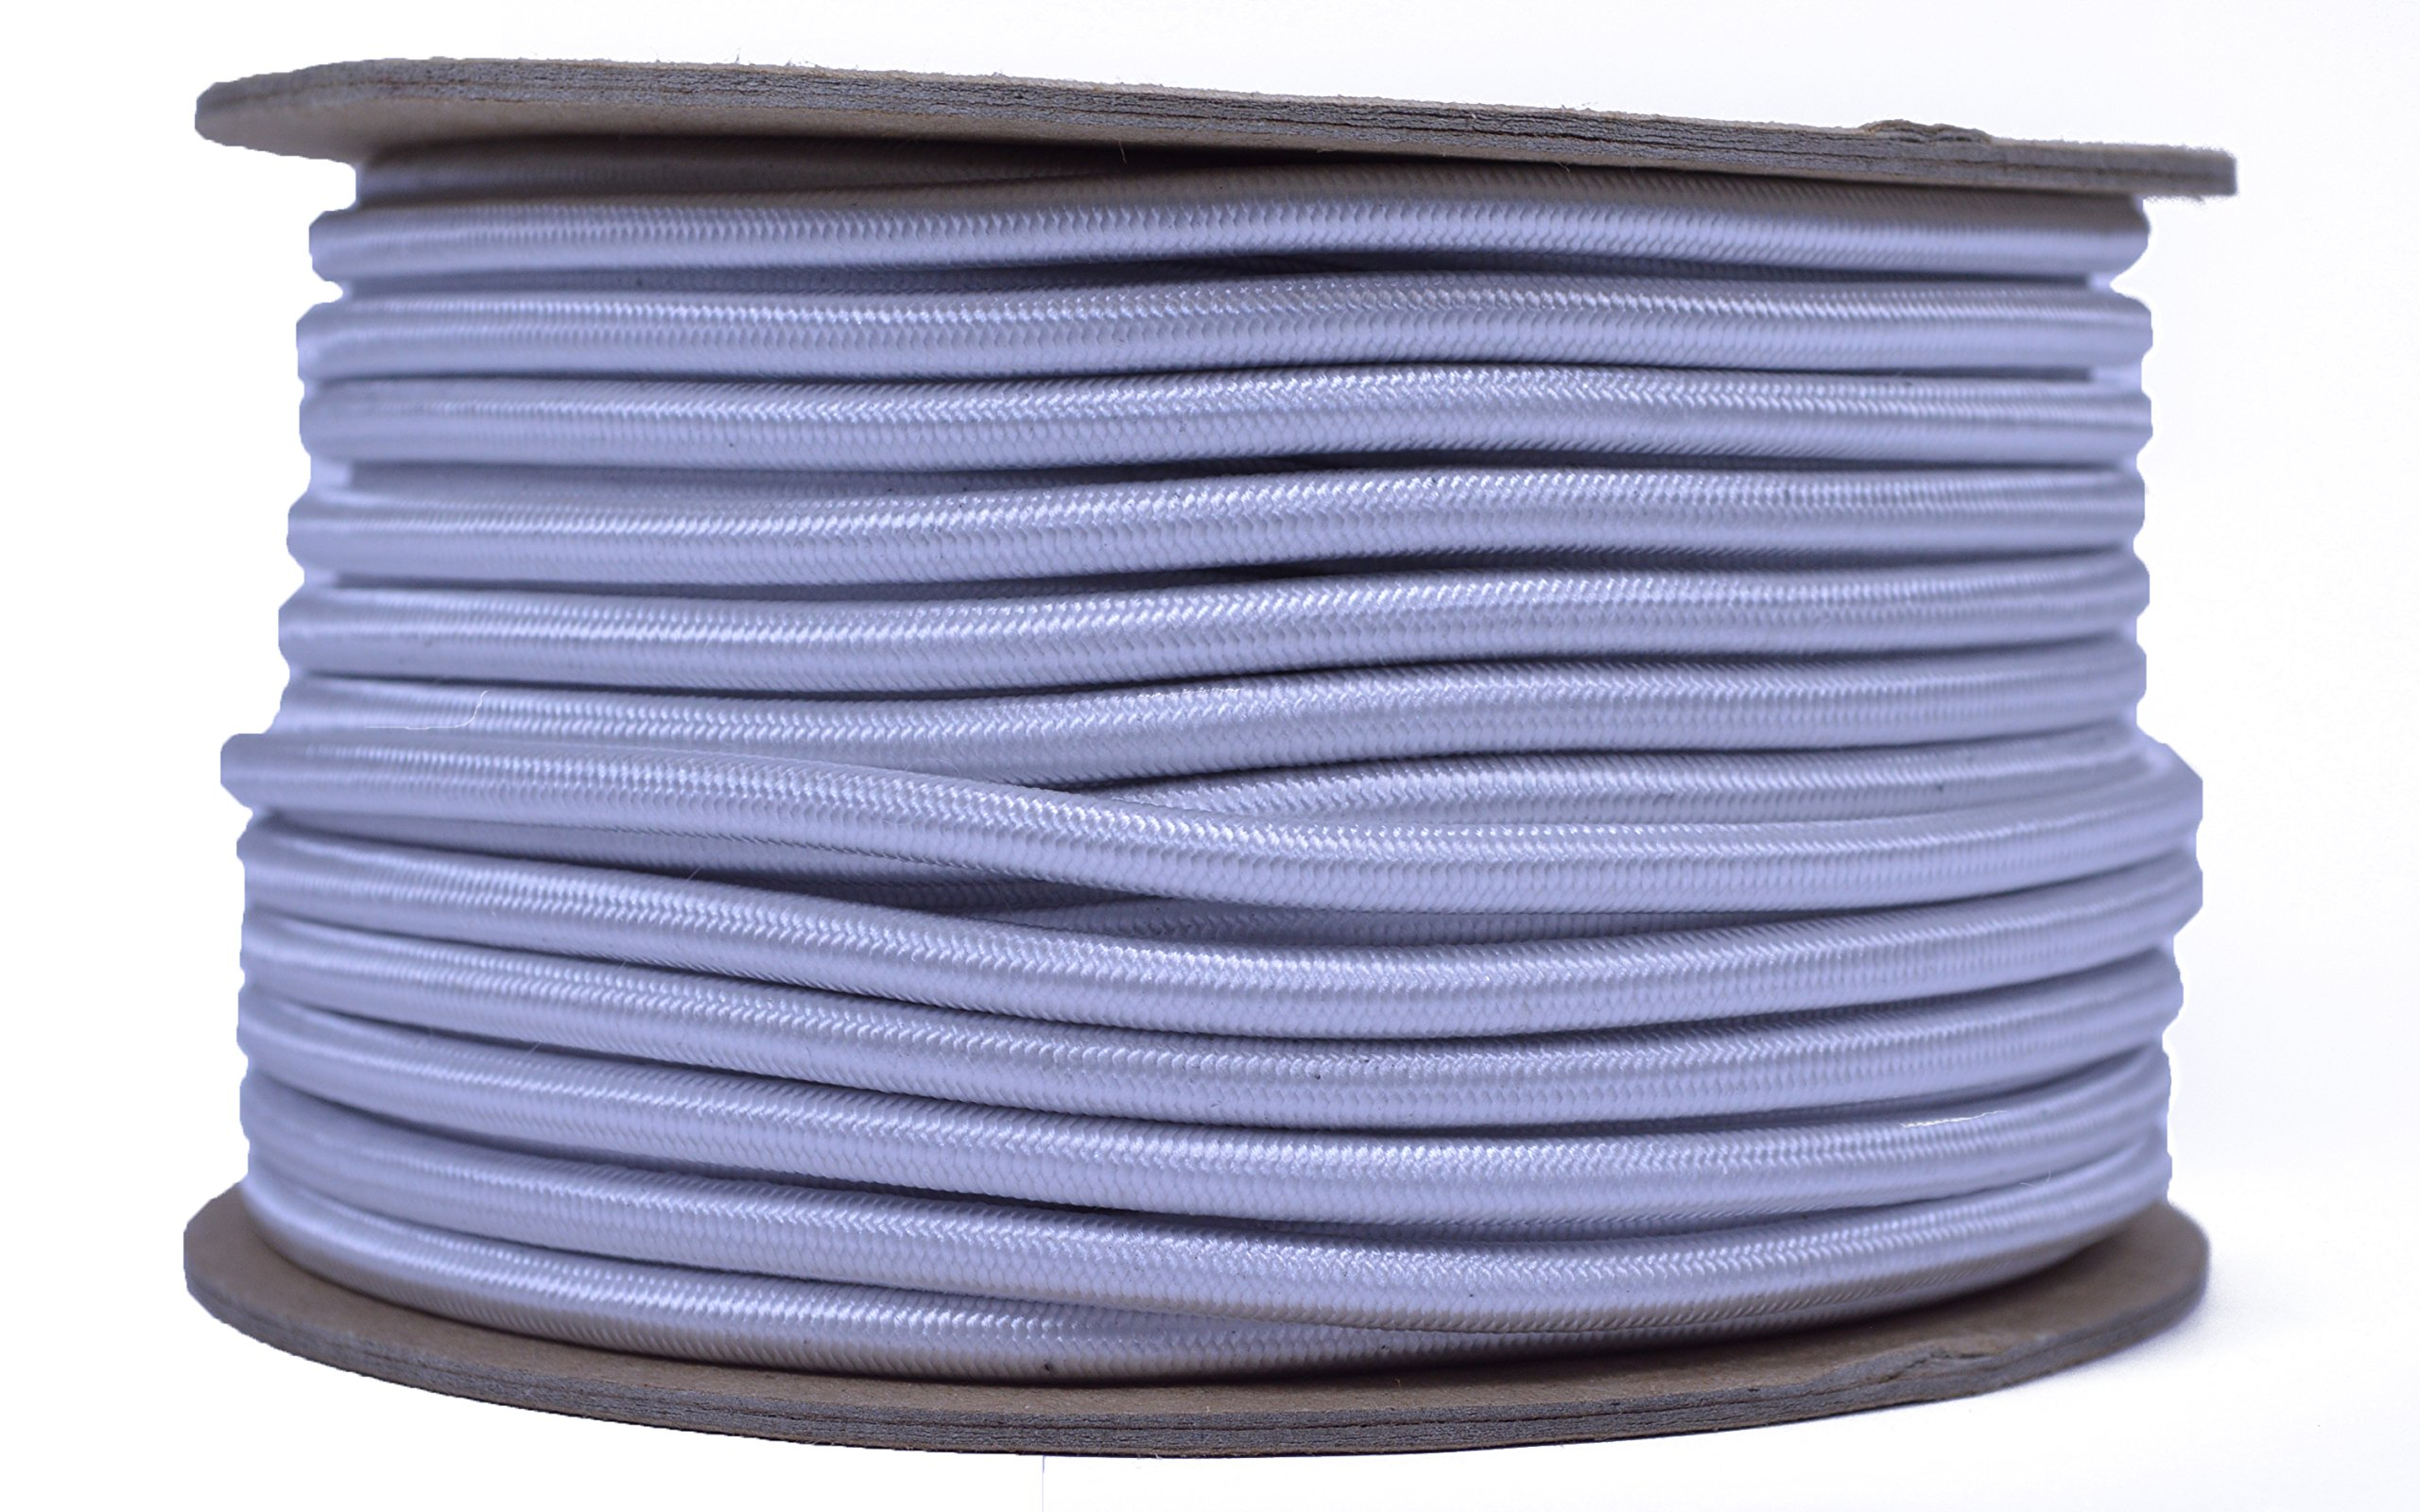 White 3/16'' Shock Cord - BORED PARACORD Marine Grade Shock / Bungee / Stretch Cord 3/16 inch x 100 feet Several Colors - Made in USA